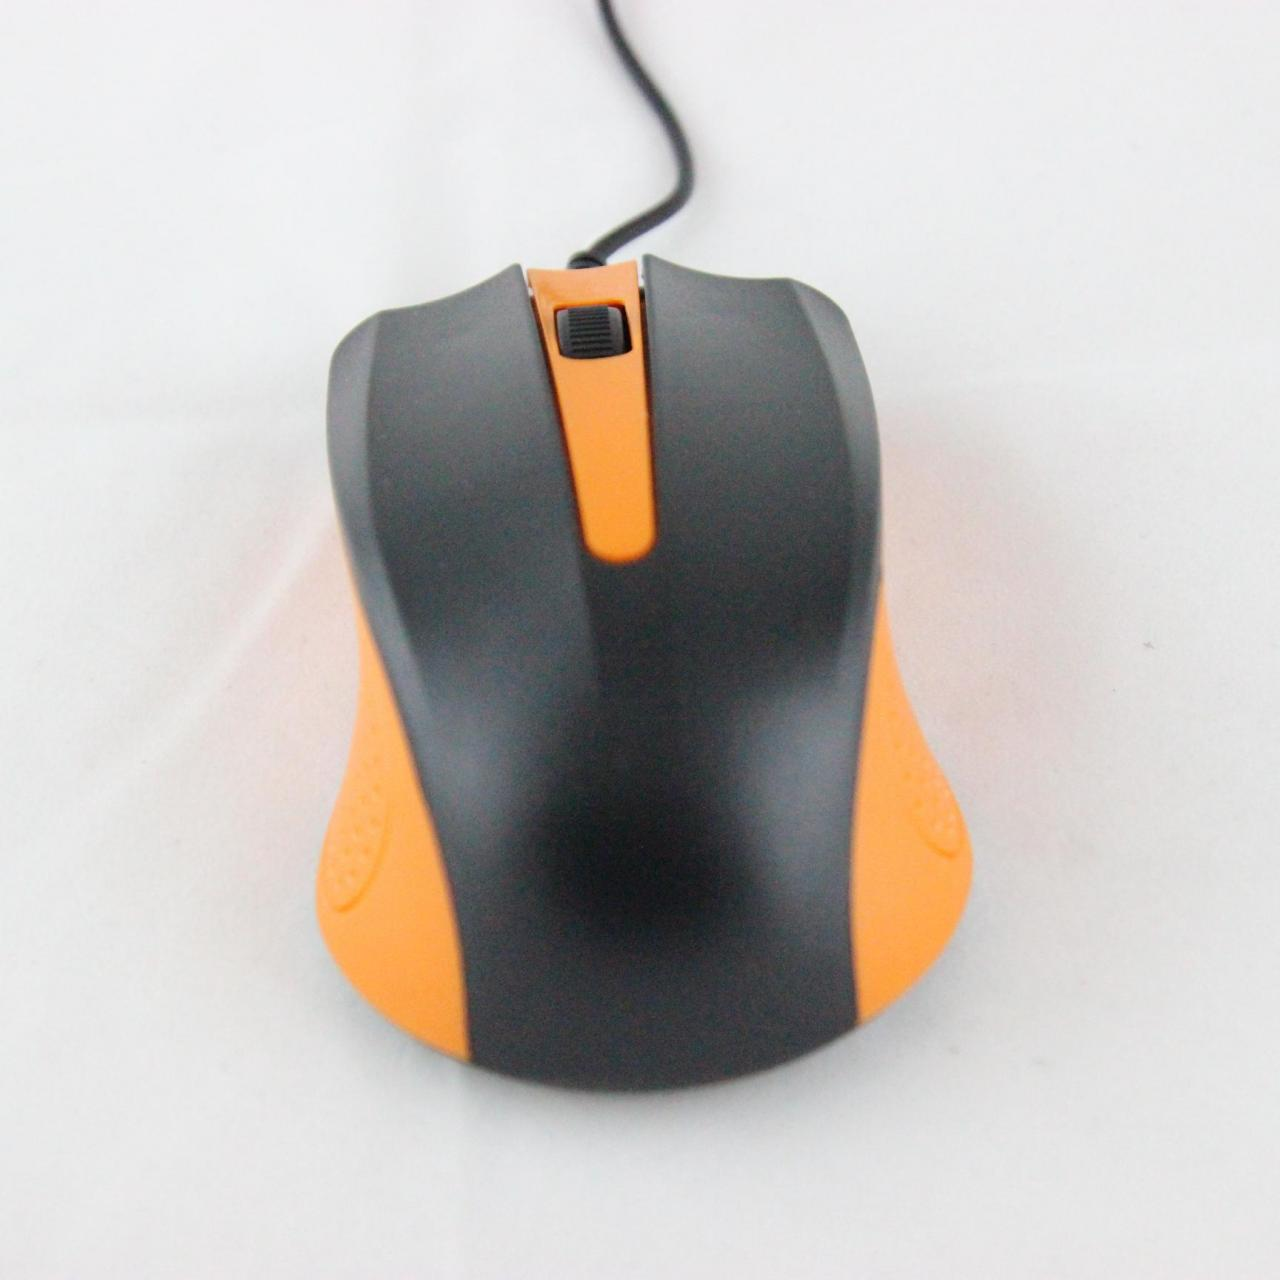 Wired Mouse M248